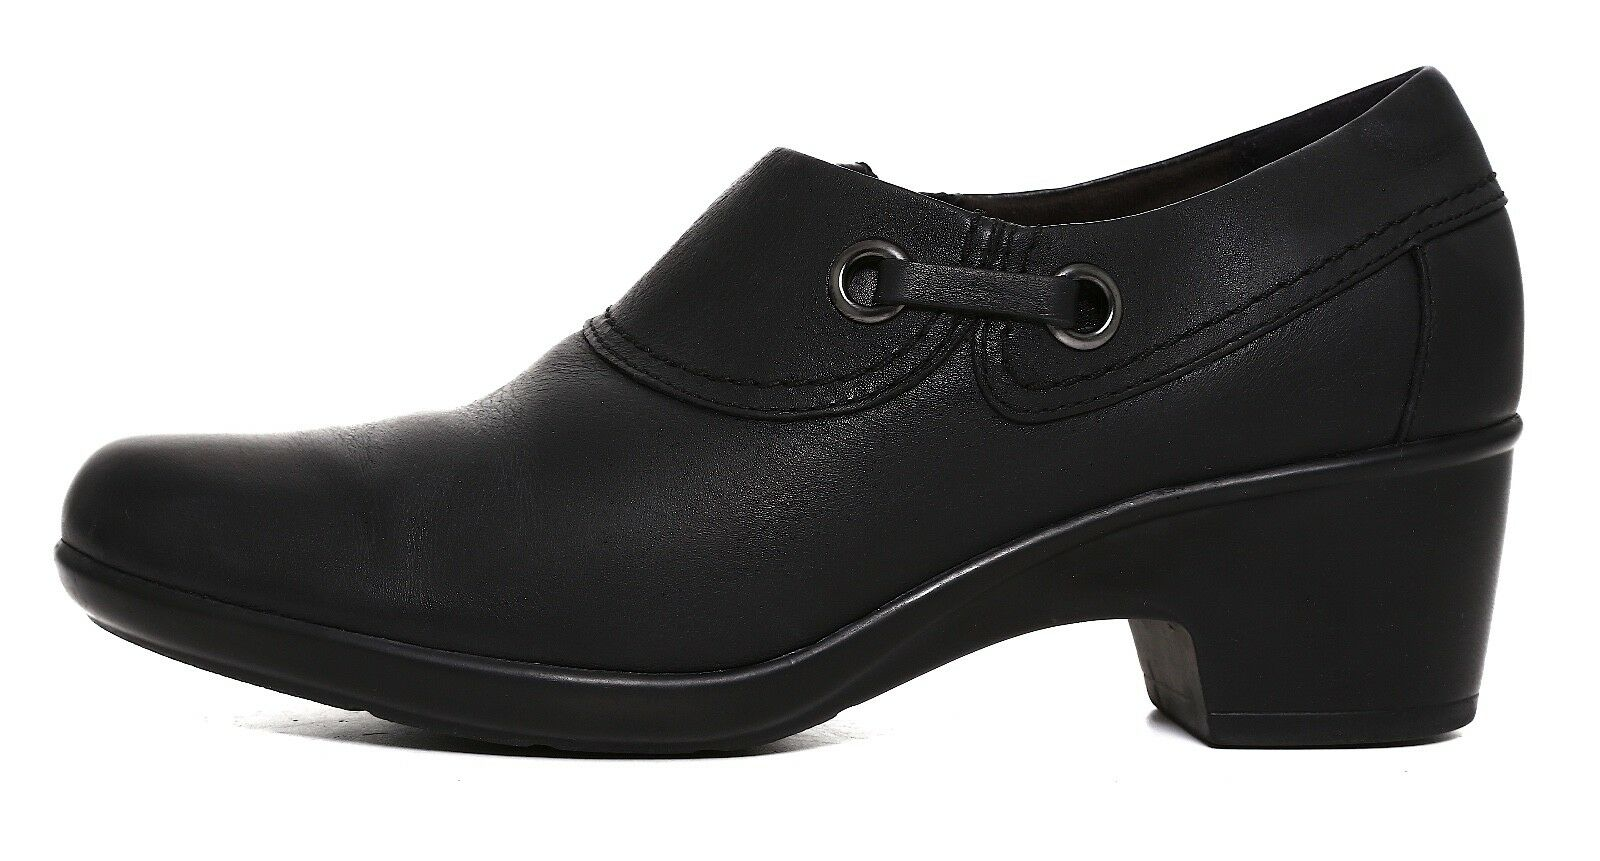 Clarks Genette Danby Leather Ankle Bootie Black Women Sz 9 9 9 M 2455 96e658